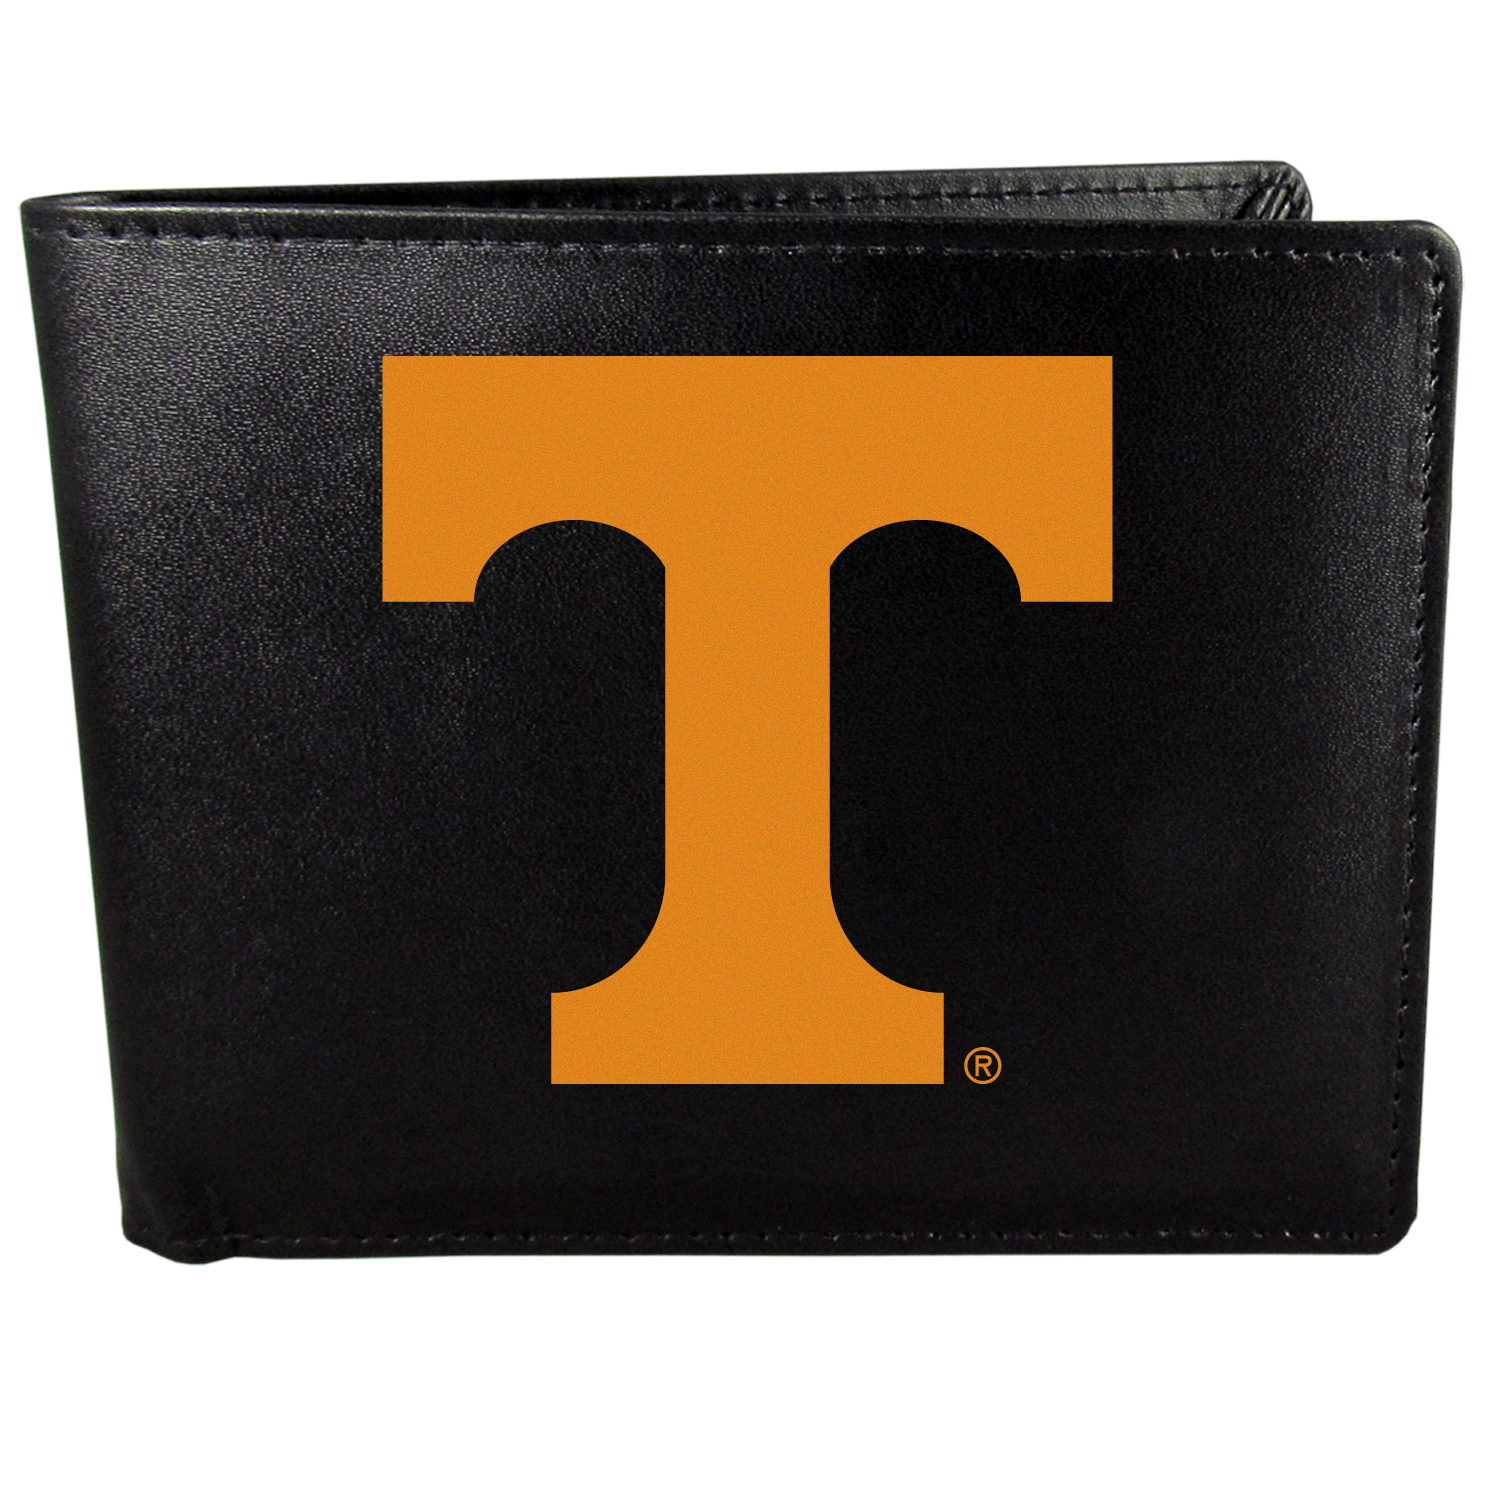 Tennessee Volunteers Bi-fold Wallet Large Logo - Sports fans do not have to sacrifice style with this classic bi-fold wallet that sports the Tennessee Volunteers extra large logo. This men's fashion accessory has a leather grain look and expert craftmanship for a quality wallet at a great price. The wallet features inner credit card slots, windowed ID slot and a large billfold pocket. The front of the wallet features a printed team logo.